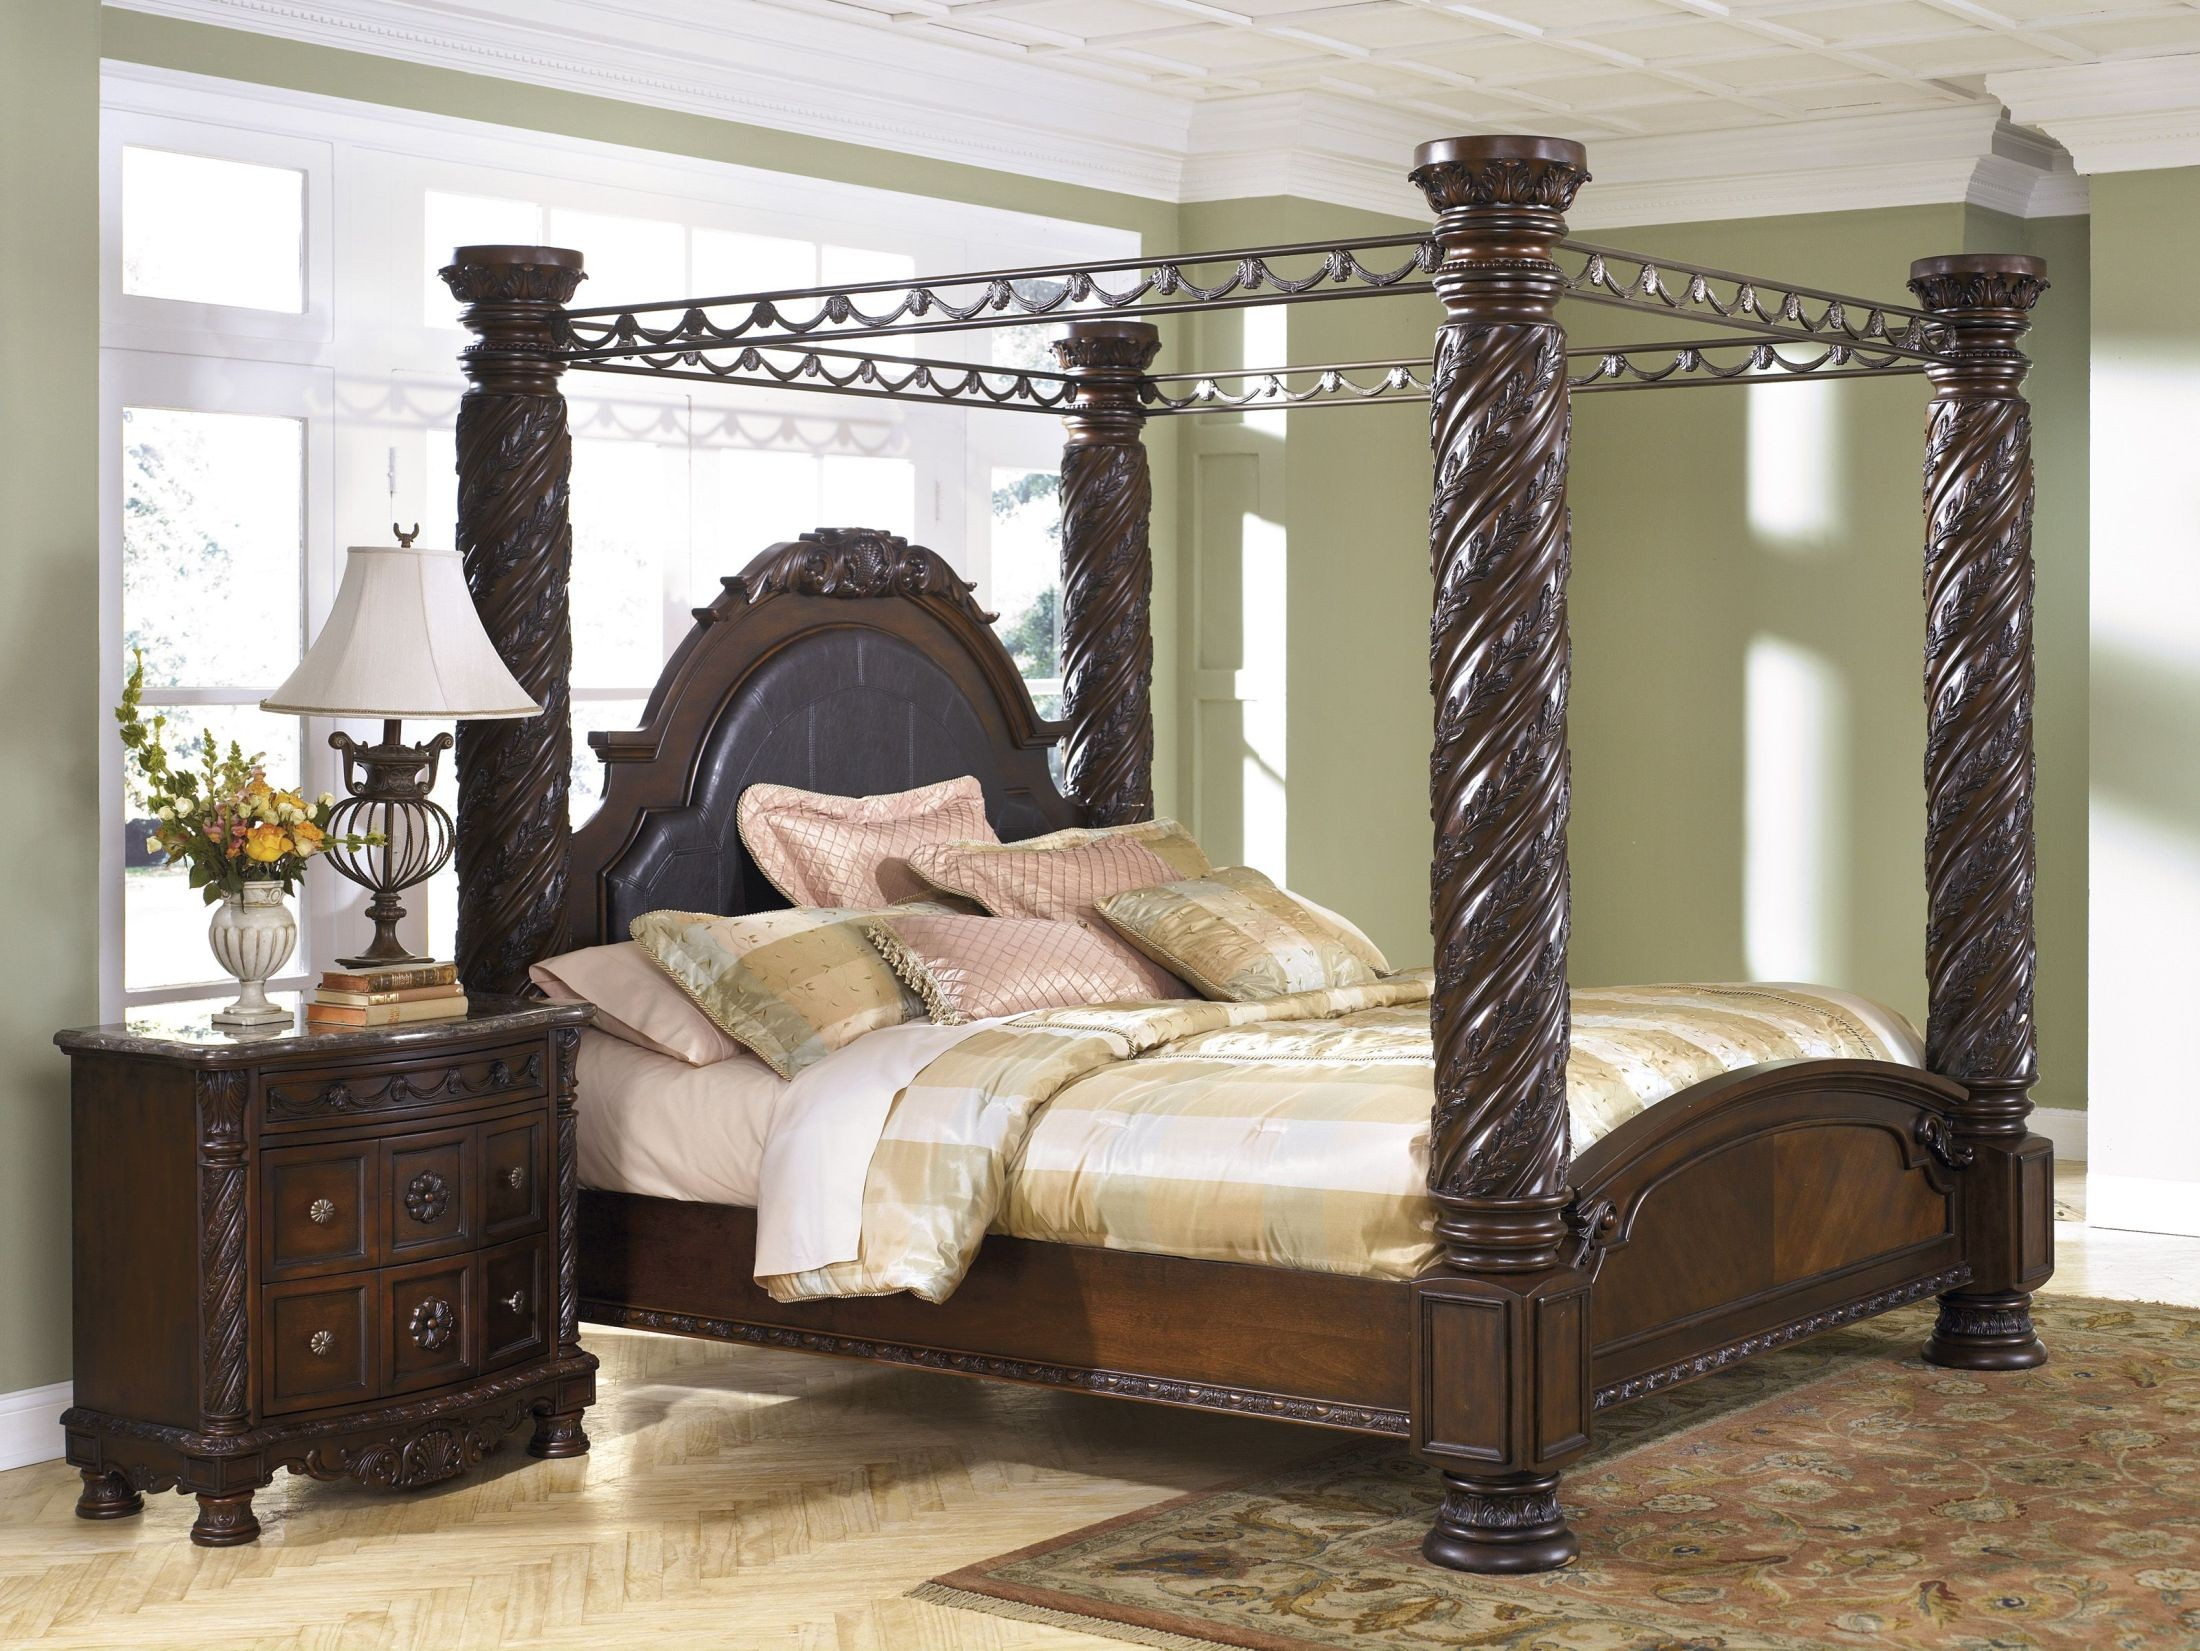 North Shore Cal King Poster Bed with Canopy from Ashley | Coleman